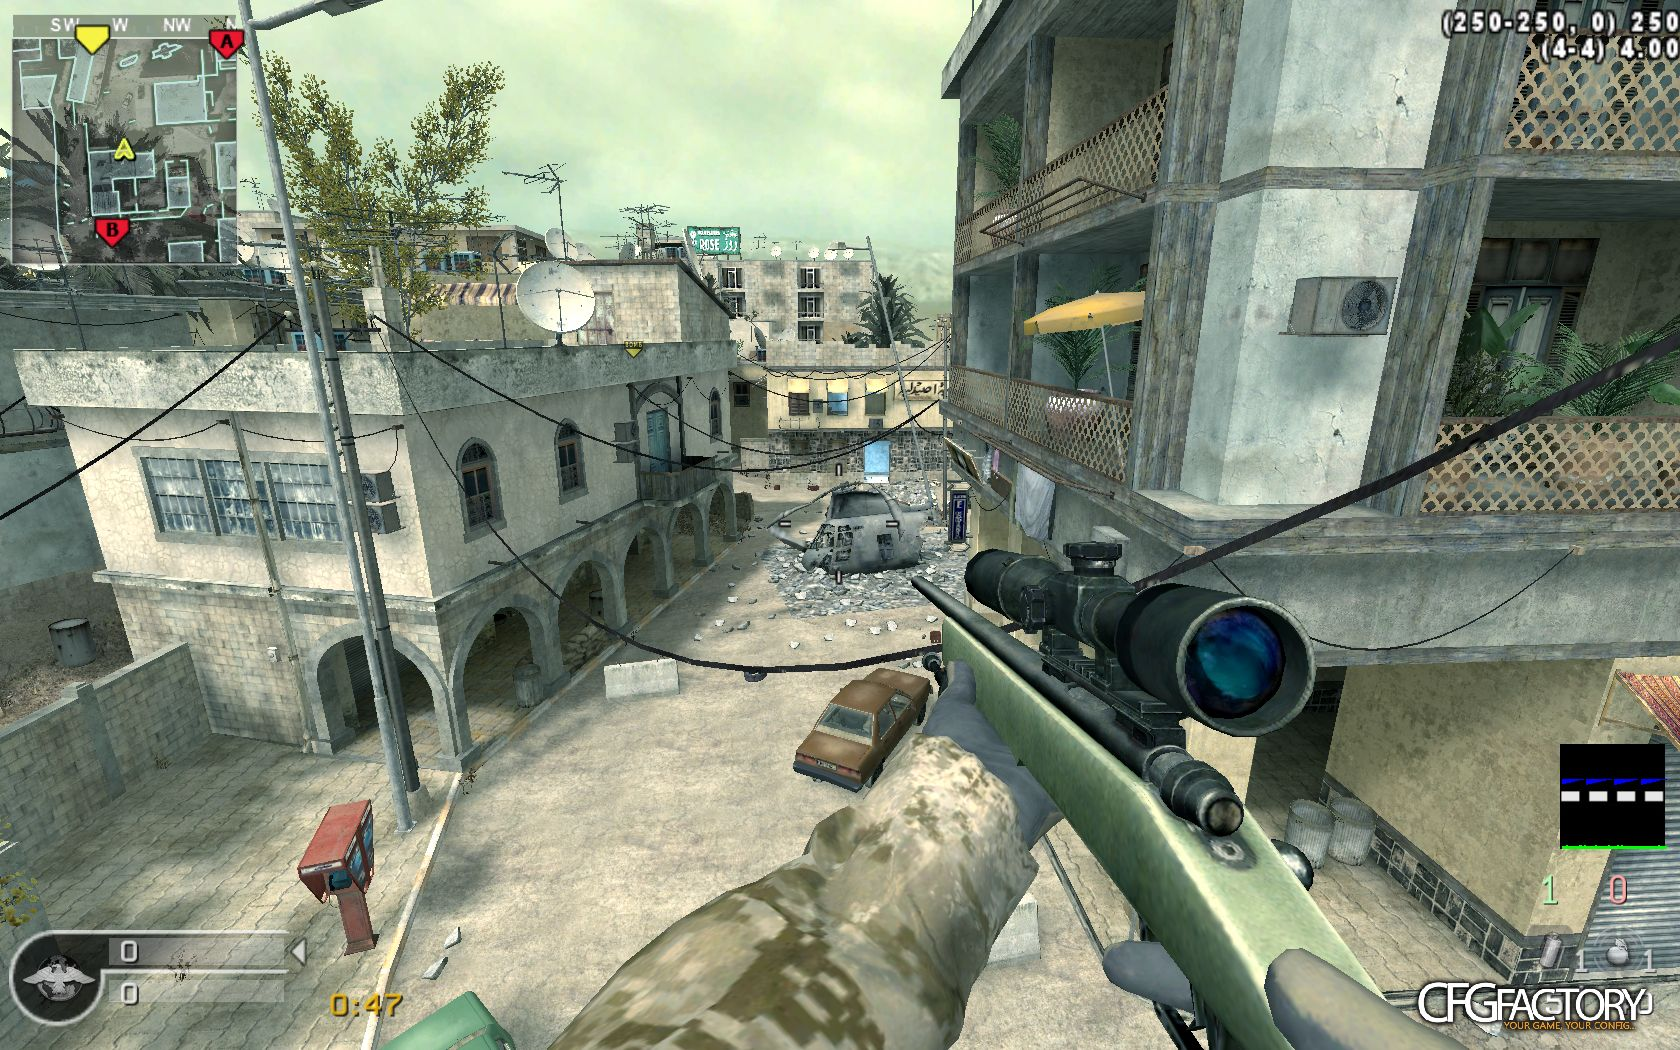 cod4, configs, froze[n]//lastconfig//, froze[n]